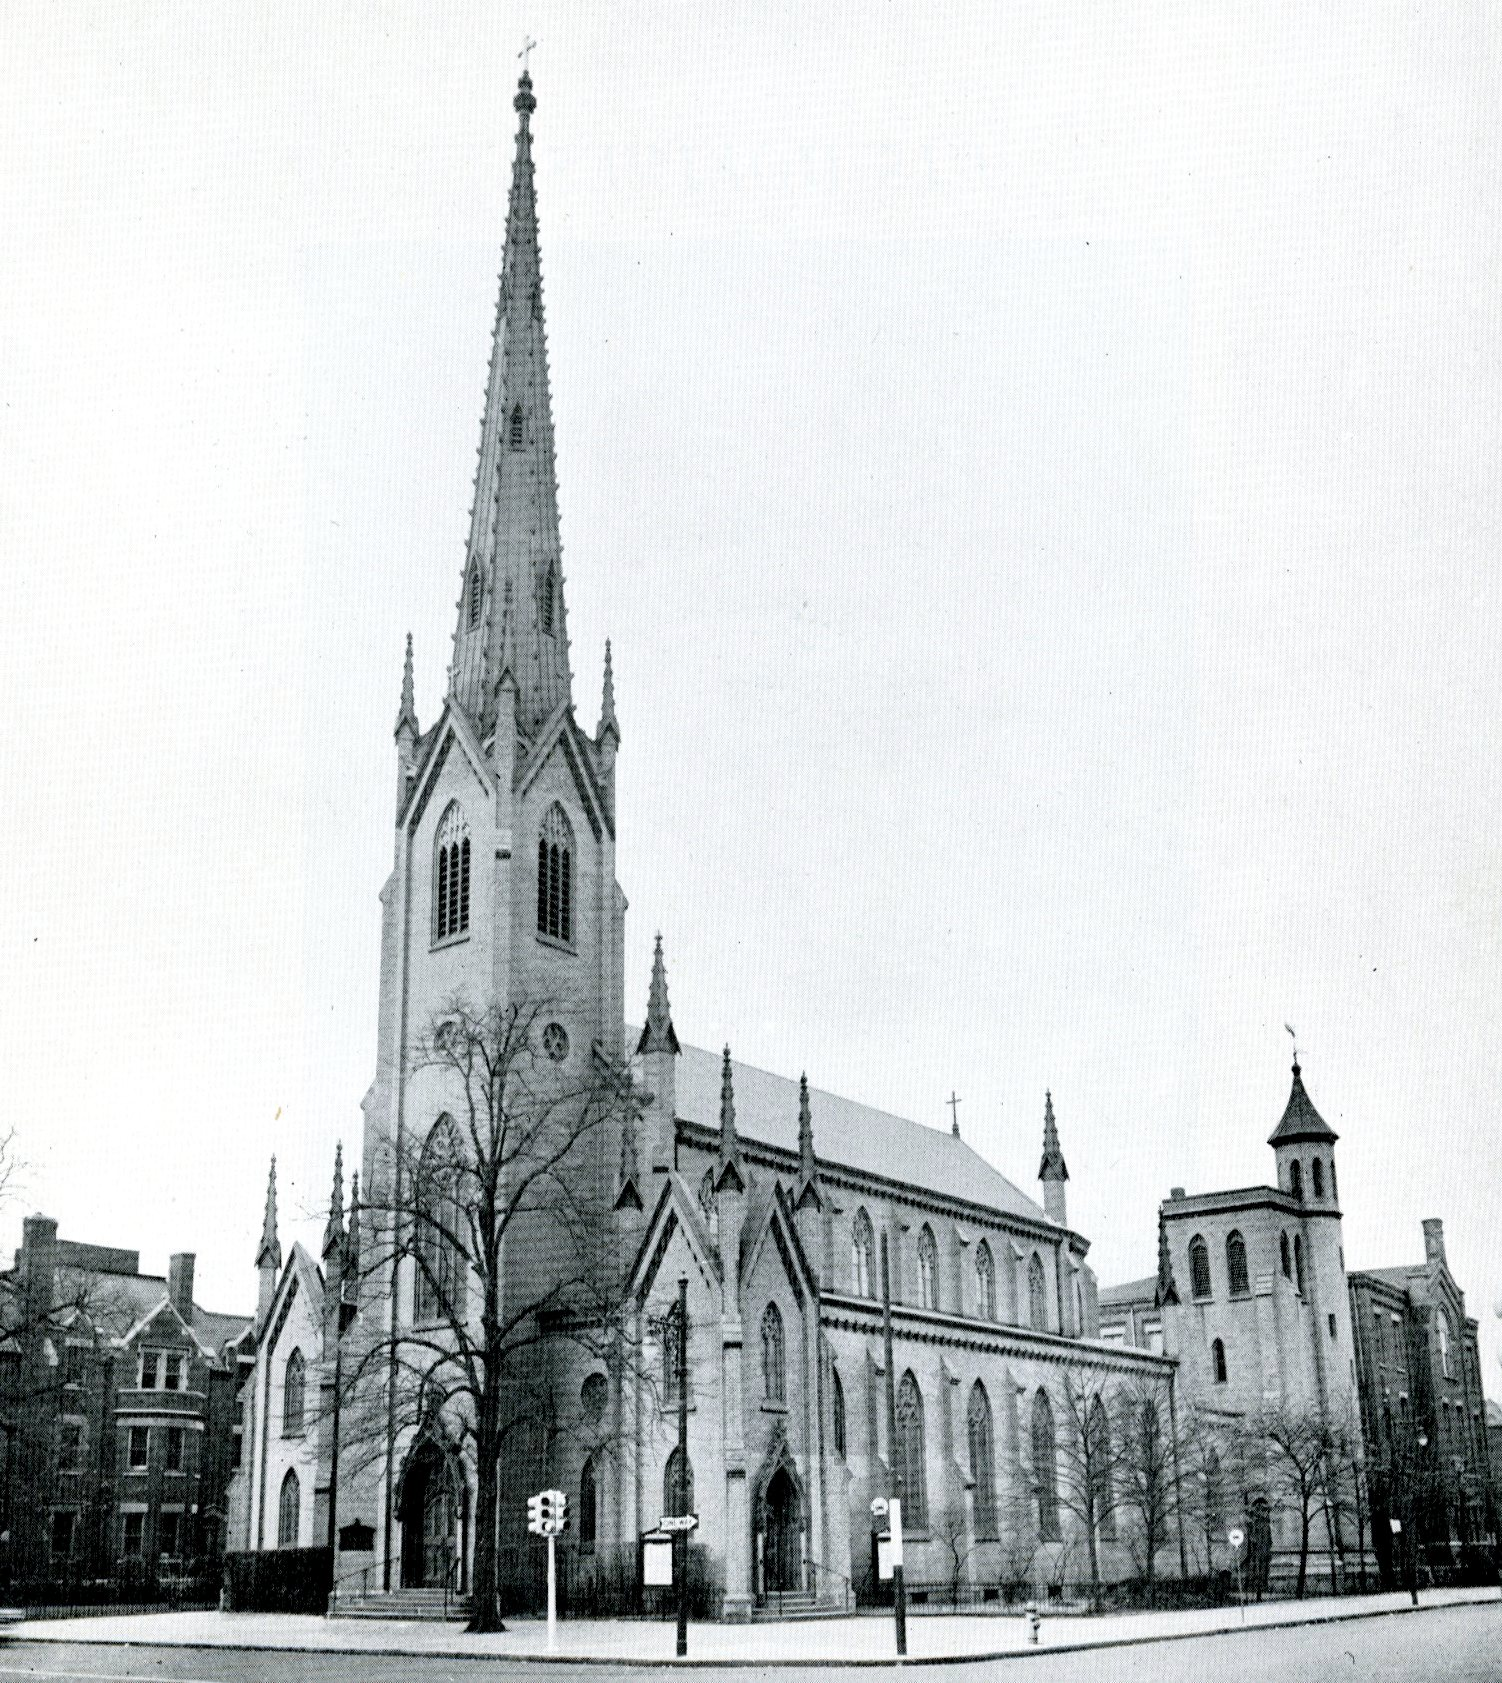 St. Patrick's Pro Cathedral